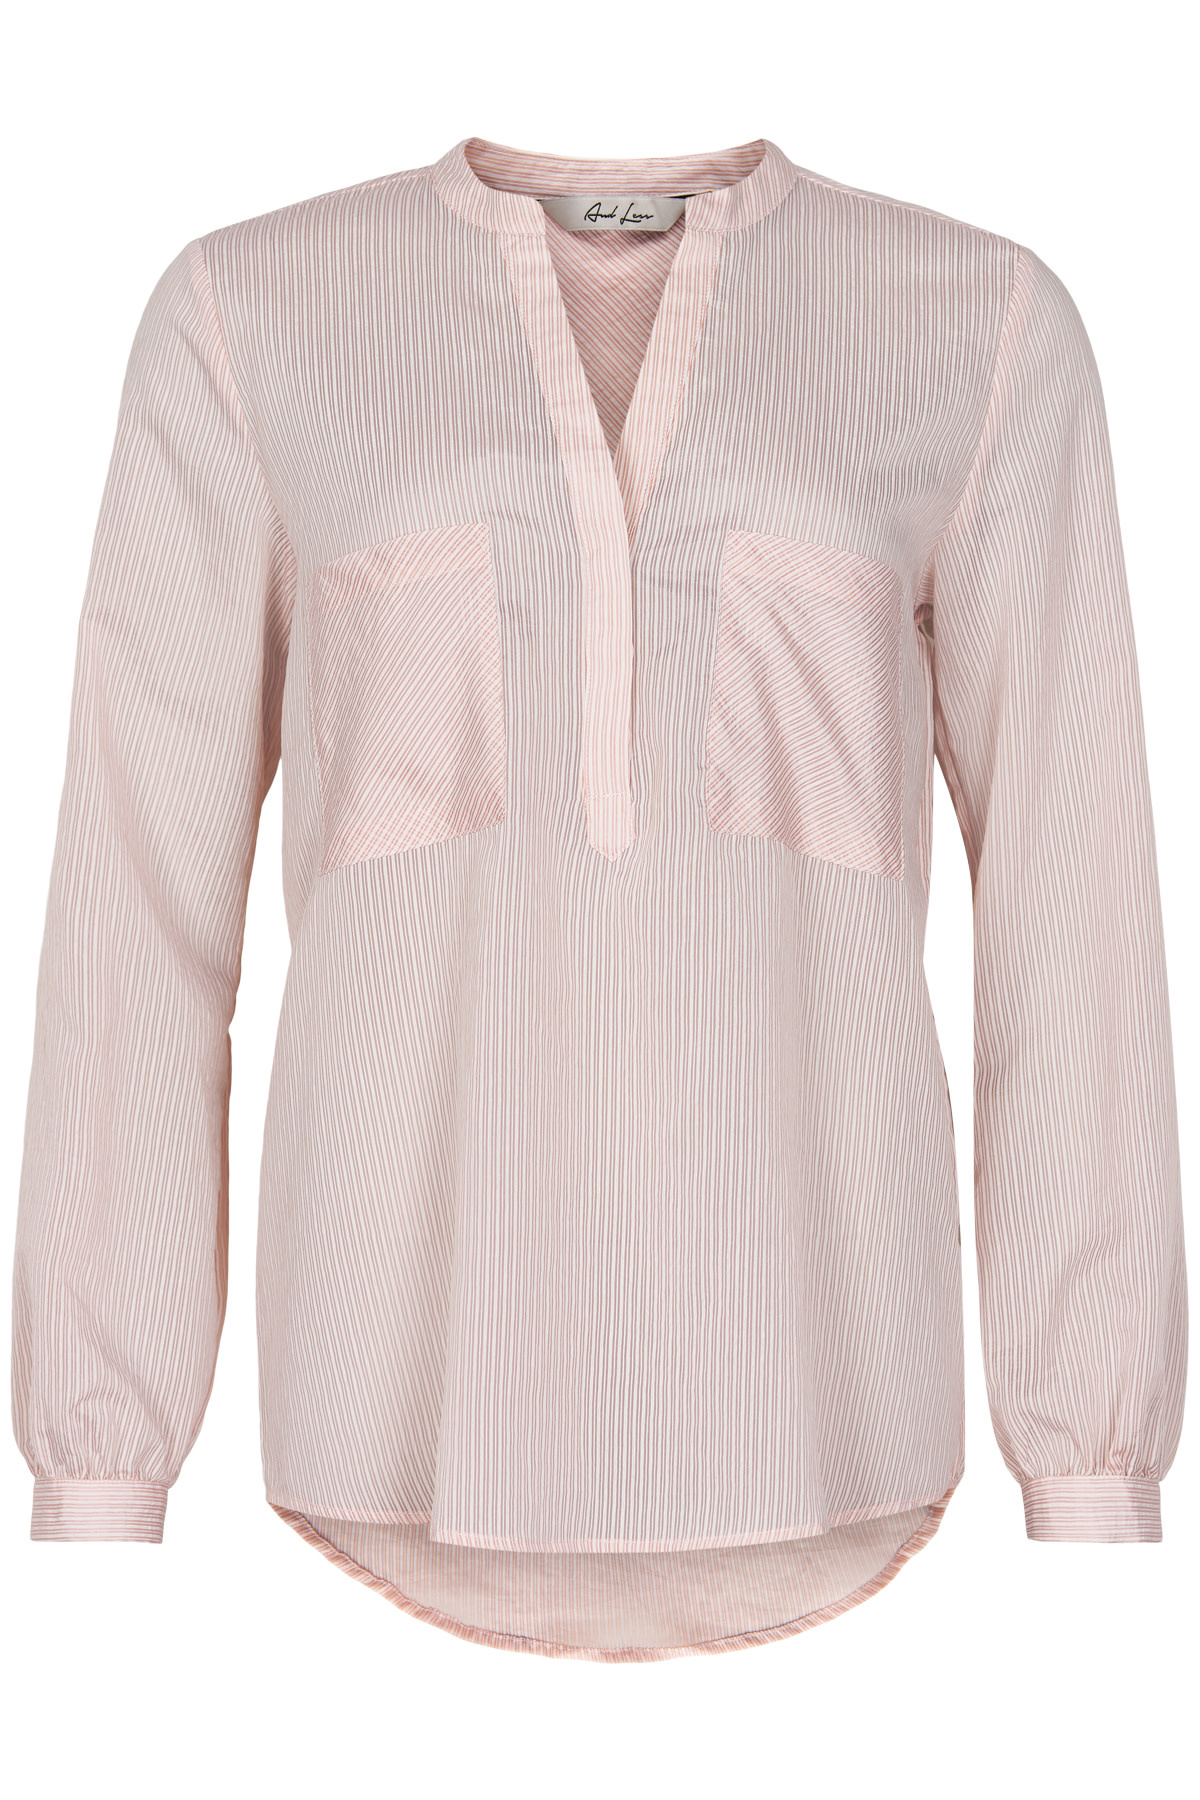 AndLess Orieaa blouse - Rose